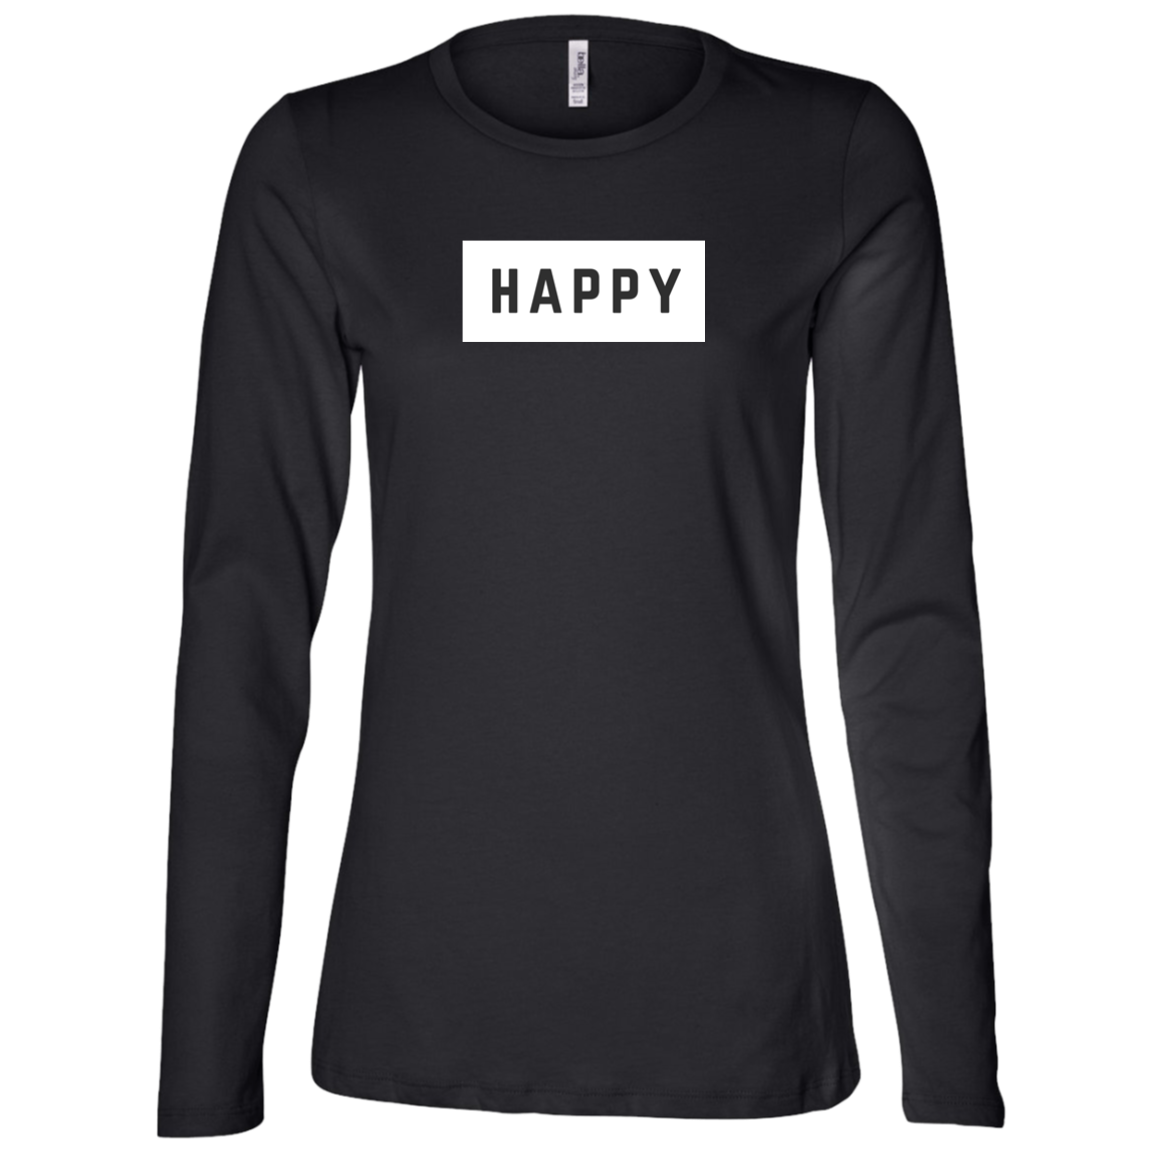 Happy Black and White Ladies' Relaxed Long Sleeve T-Shirt